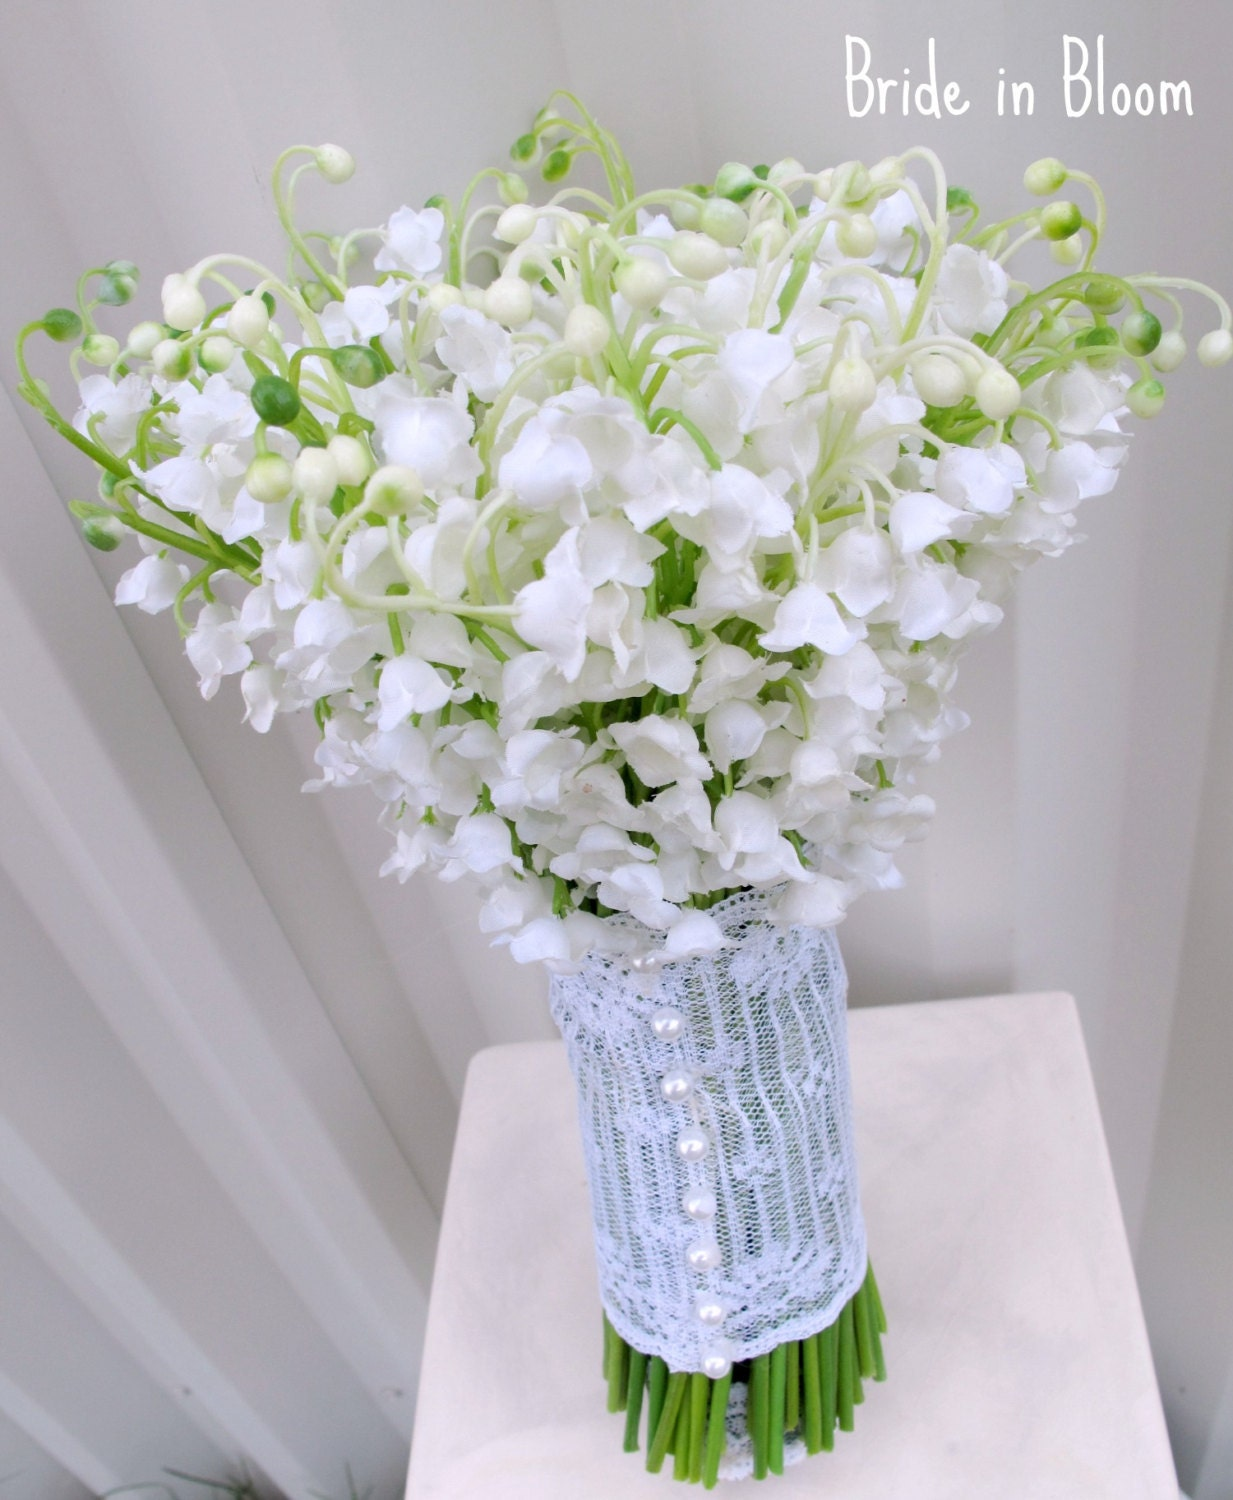 Lily Of The Valley Bouquet: Brides Wedding Bouquet Lily Of The Valley Bridal Bouquet